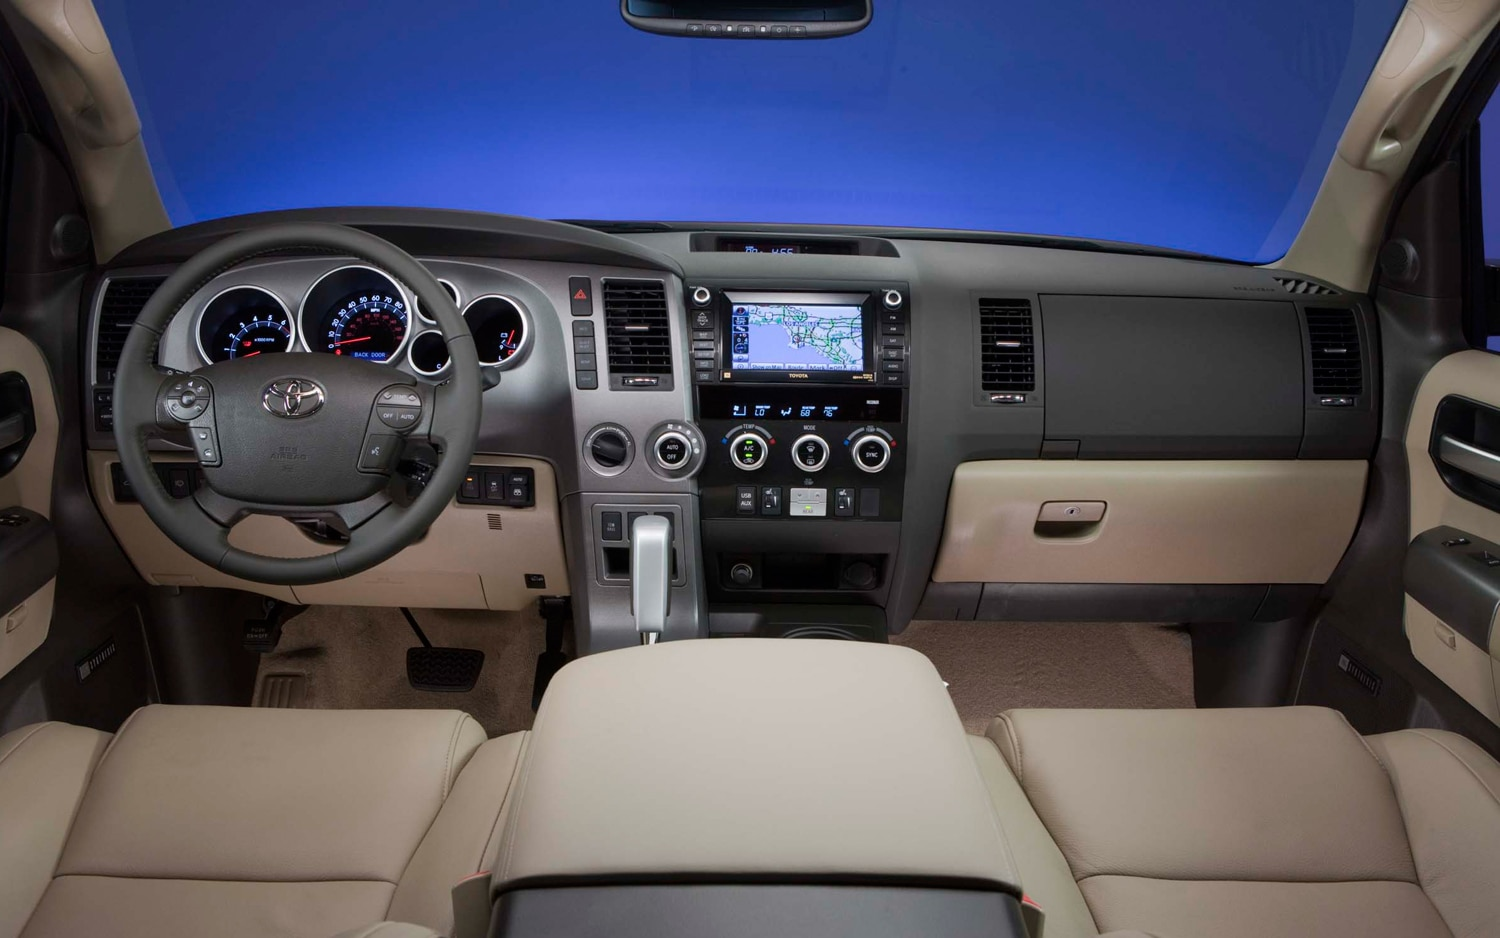 2012 Toyota Sequoia Cockpit